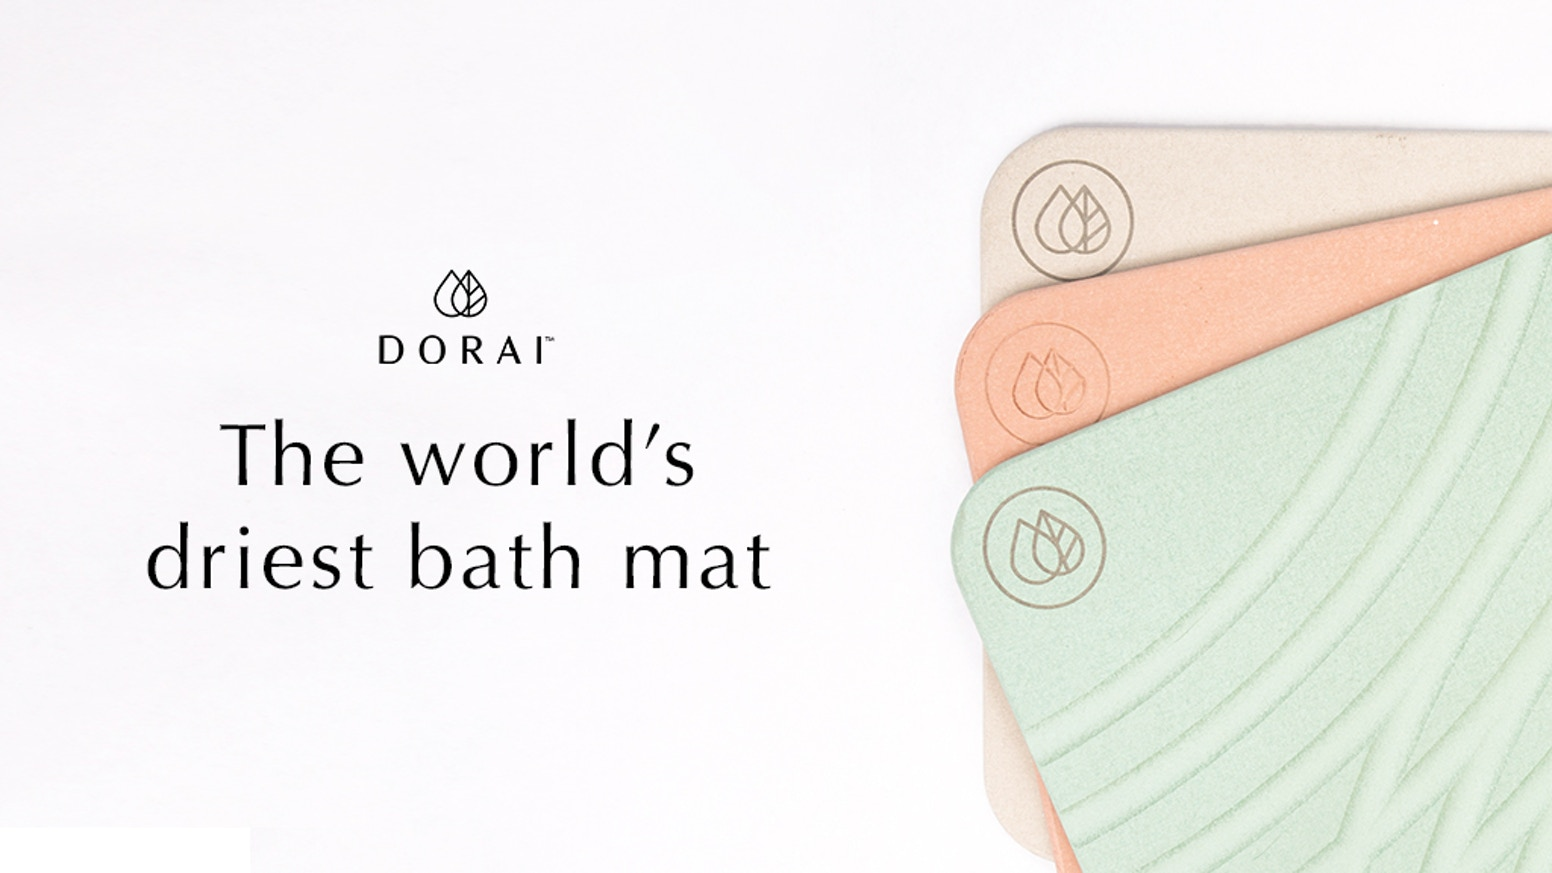 The Dorai bath mat is created from a rapidly drying material that expels moisture. It keeps your home free of mold and bacteria.